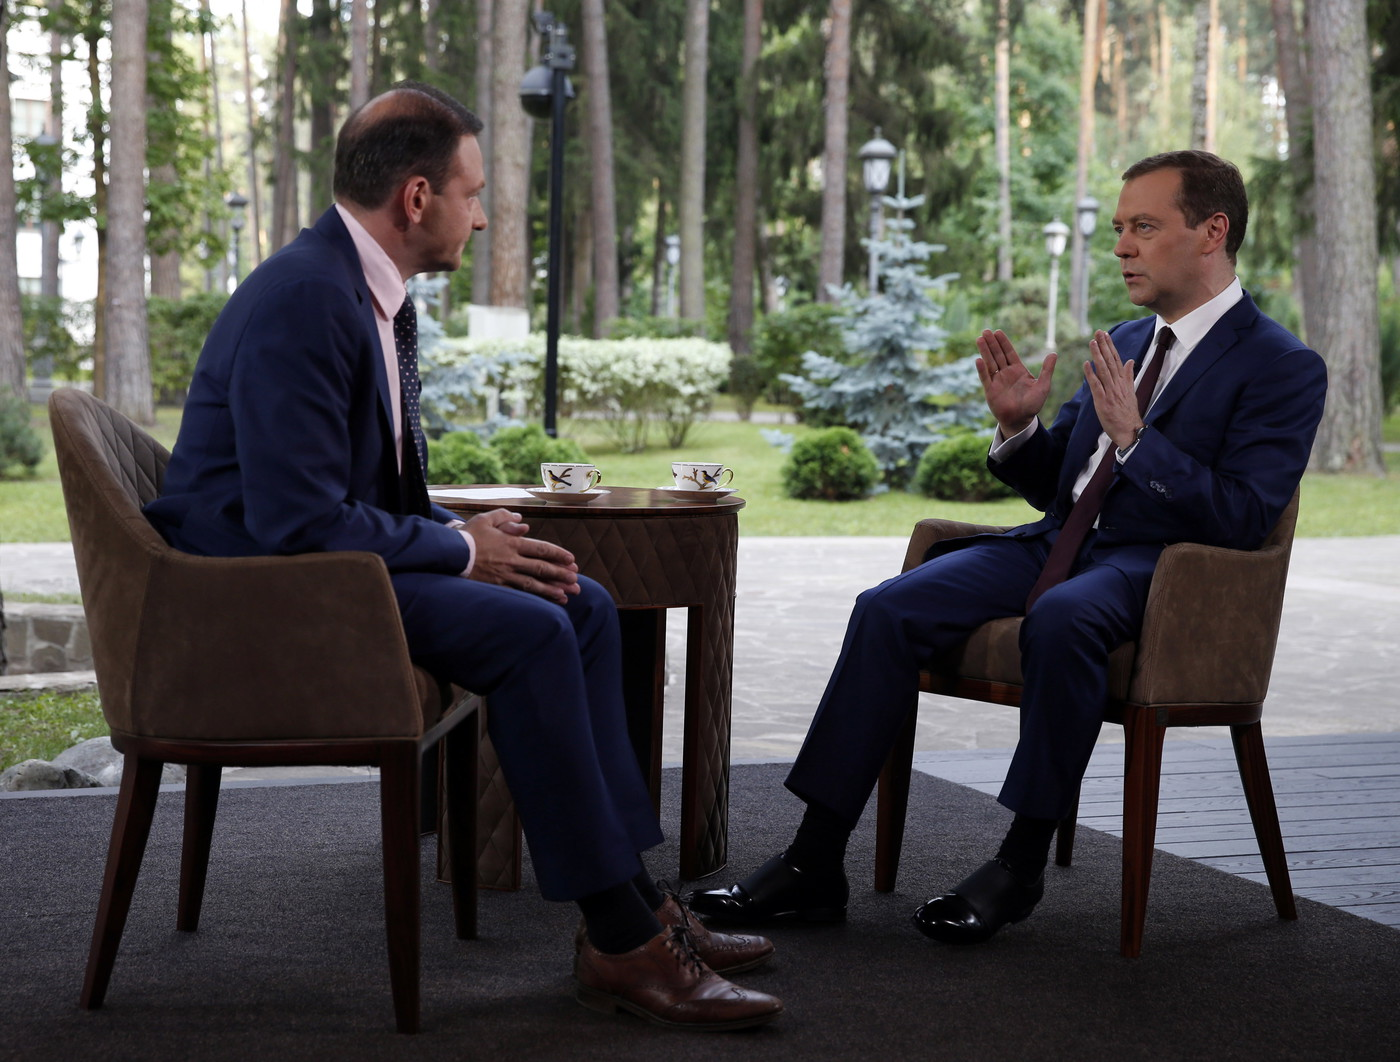 Prime minister Medvedev gives interview to Rossiya 1